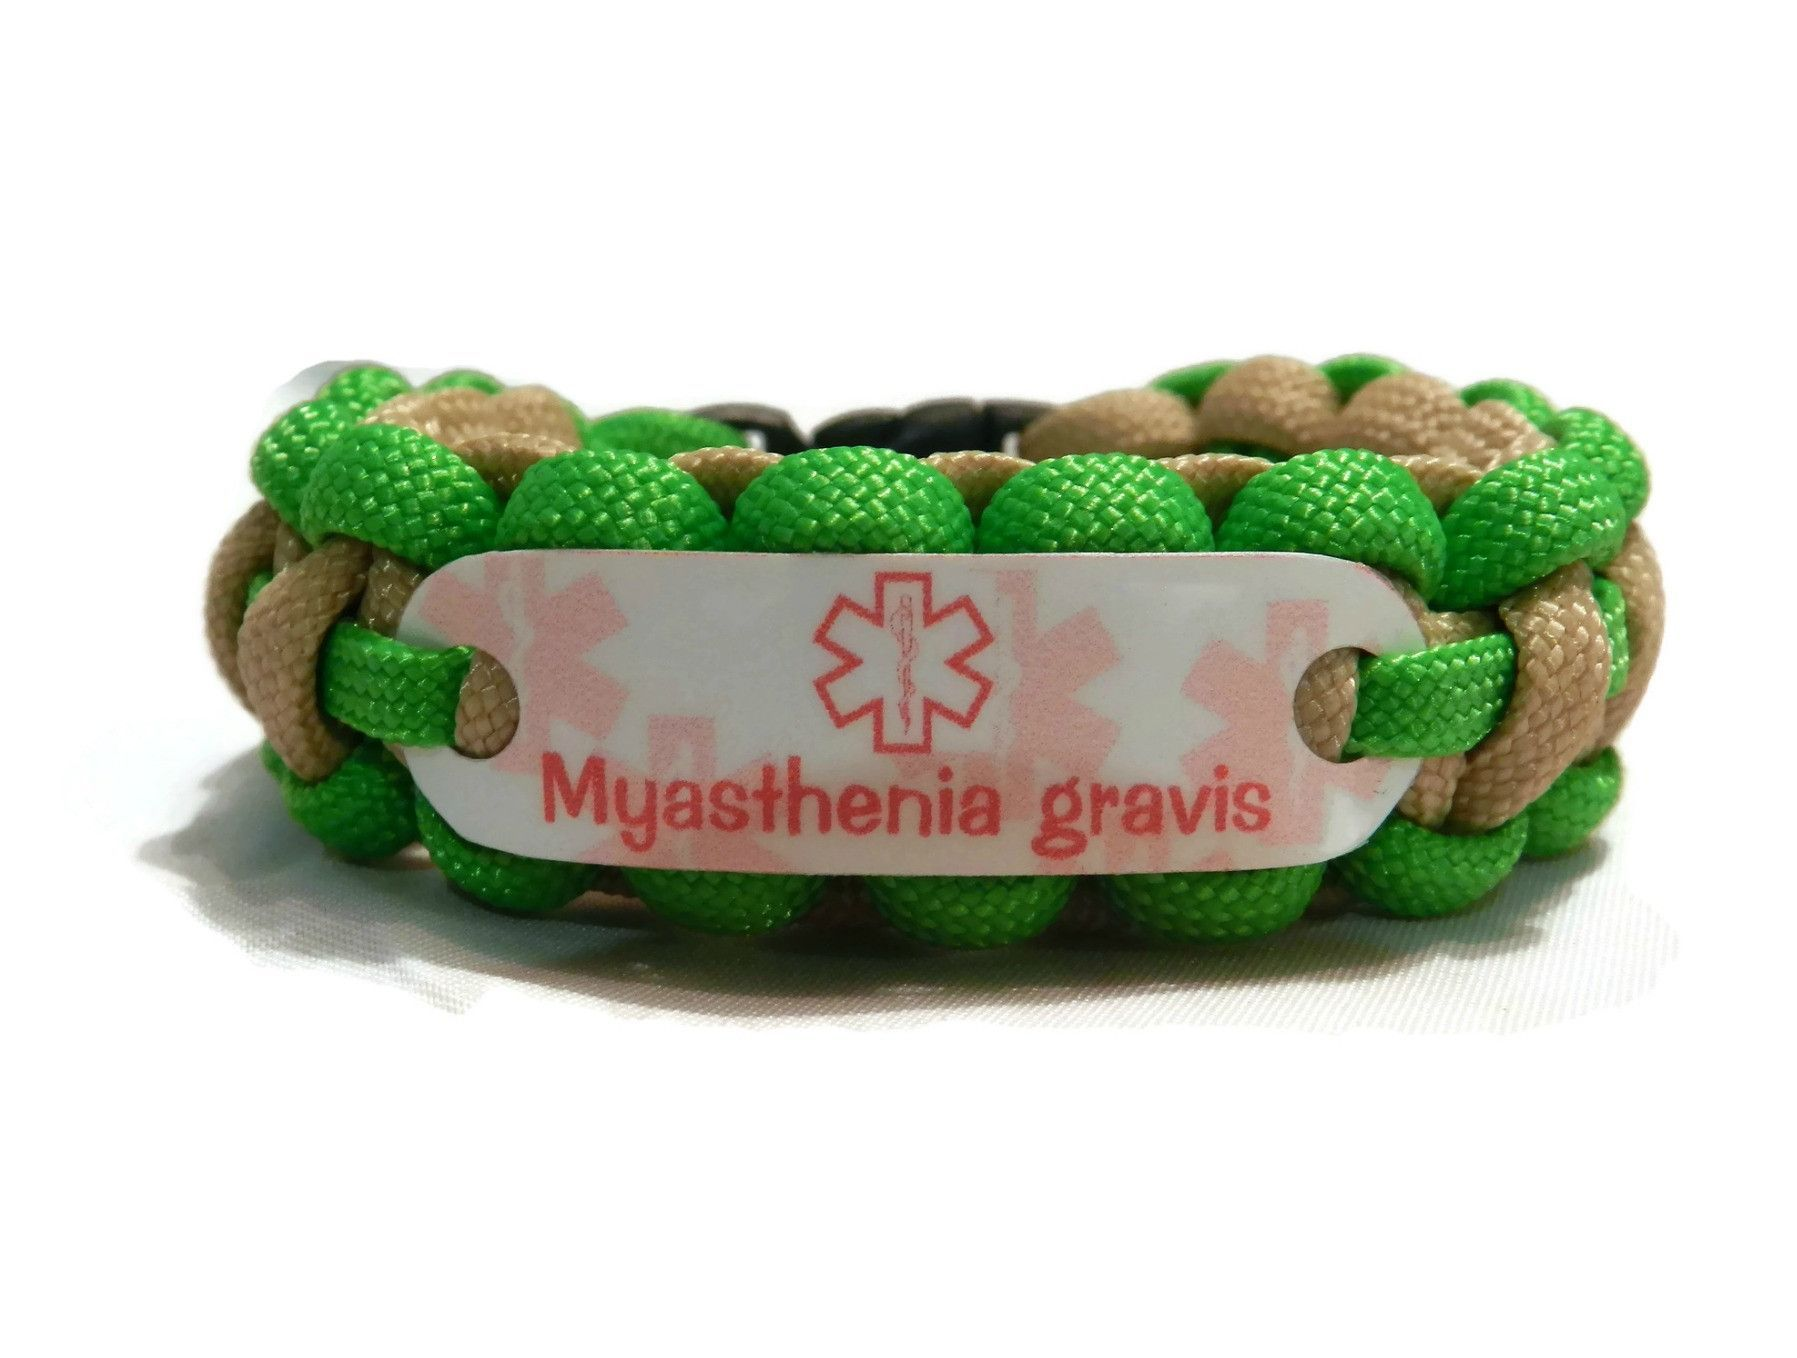 myasthenia silver anxiety and disorder agoraphobia disease batten cervical bracelet teal including cancers gravis awareness pin types